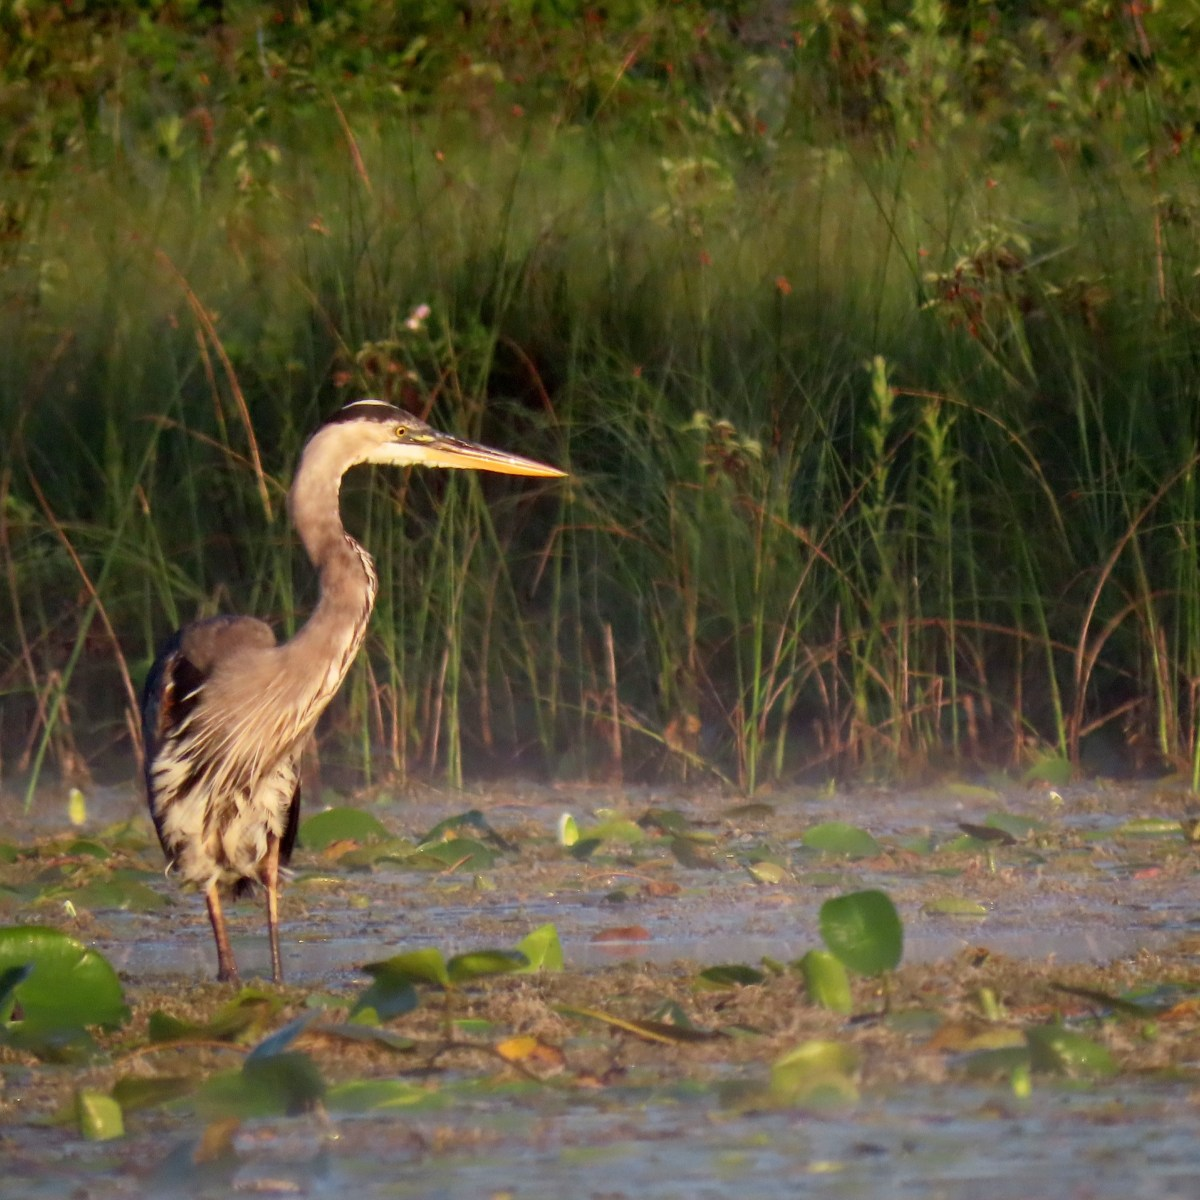 Great Blue Heron stands in shallow water, mist rises from it